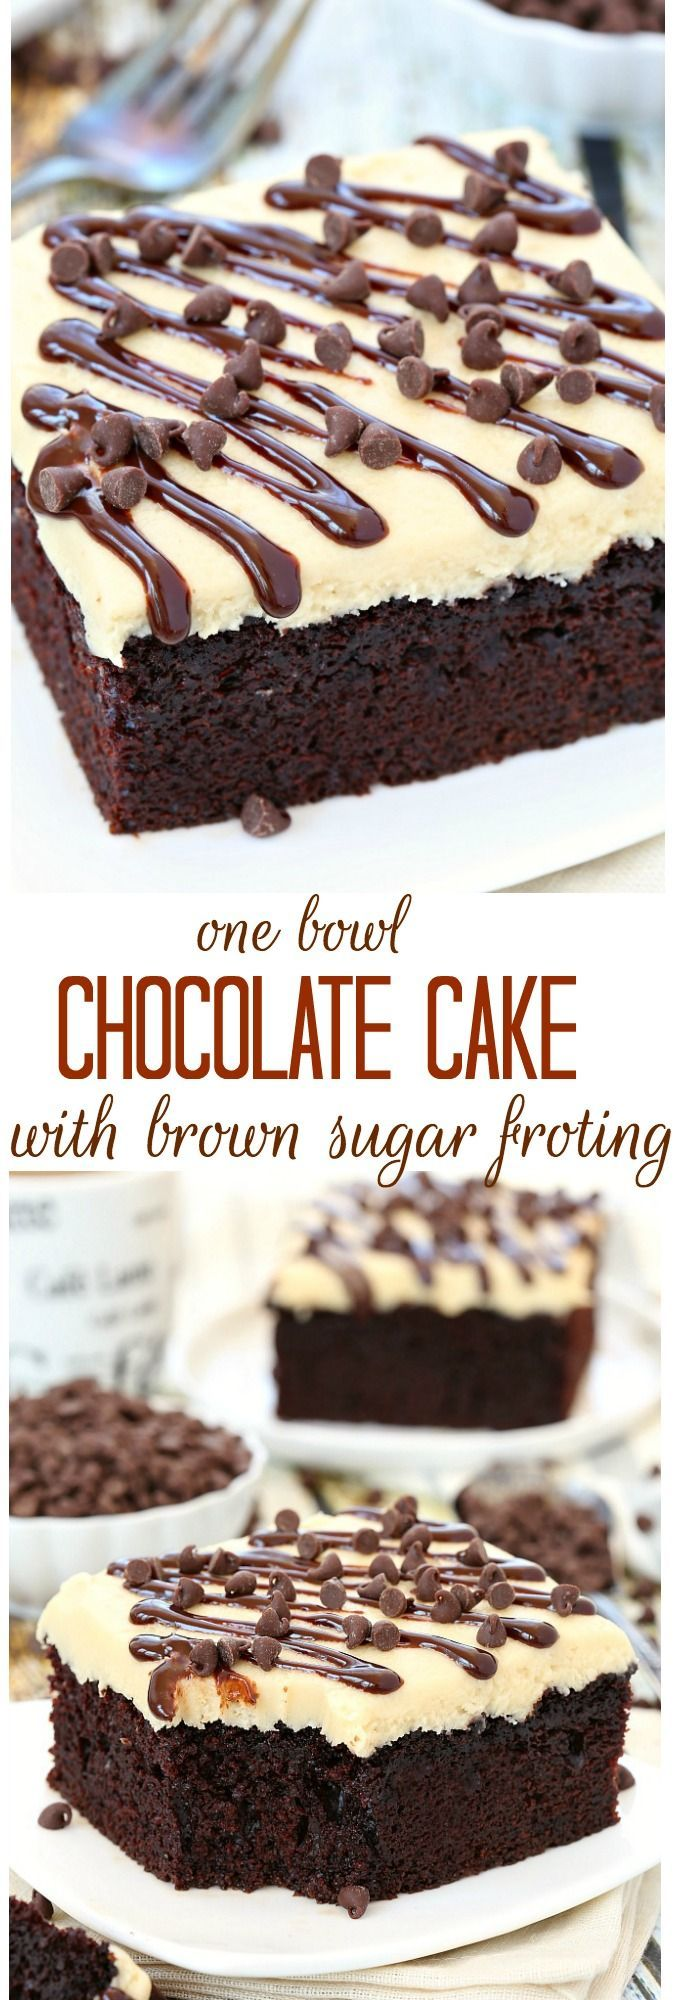 With just a handful of ingredients, this no fuss one bowl chocolate cake will quickly become one of your favorites! Top with a layer of brown sugar frosting or serve with a scoop of your favorite ice cream!